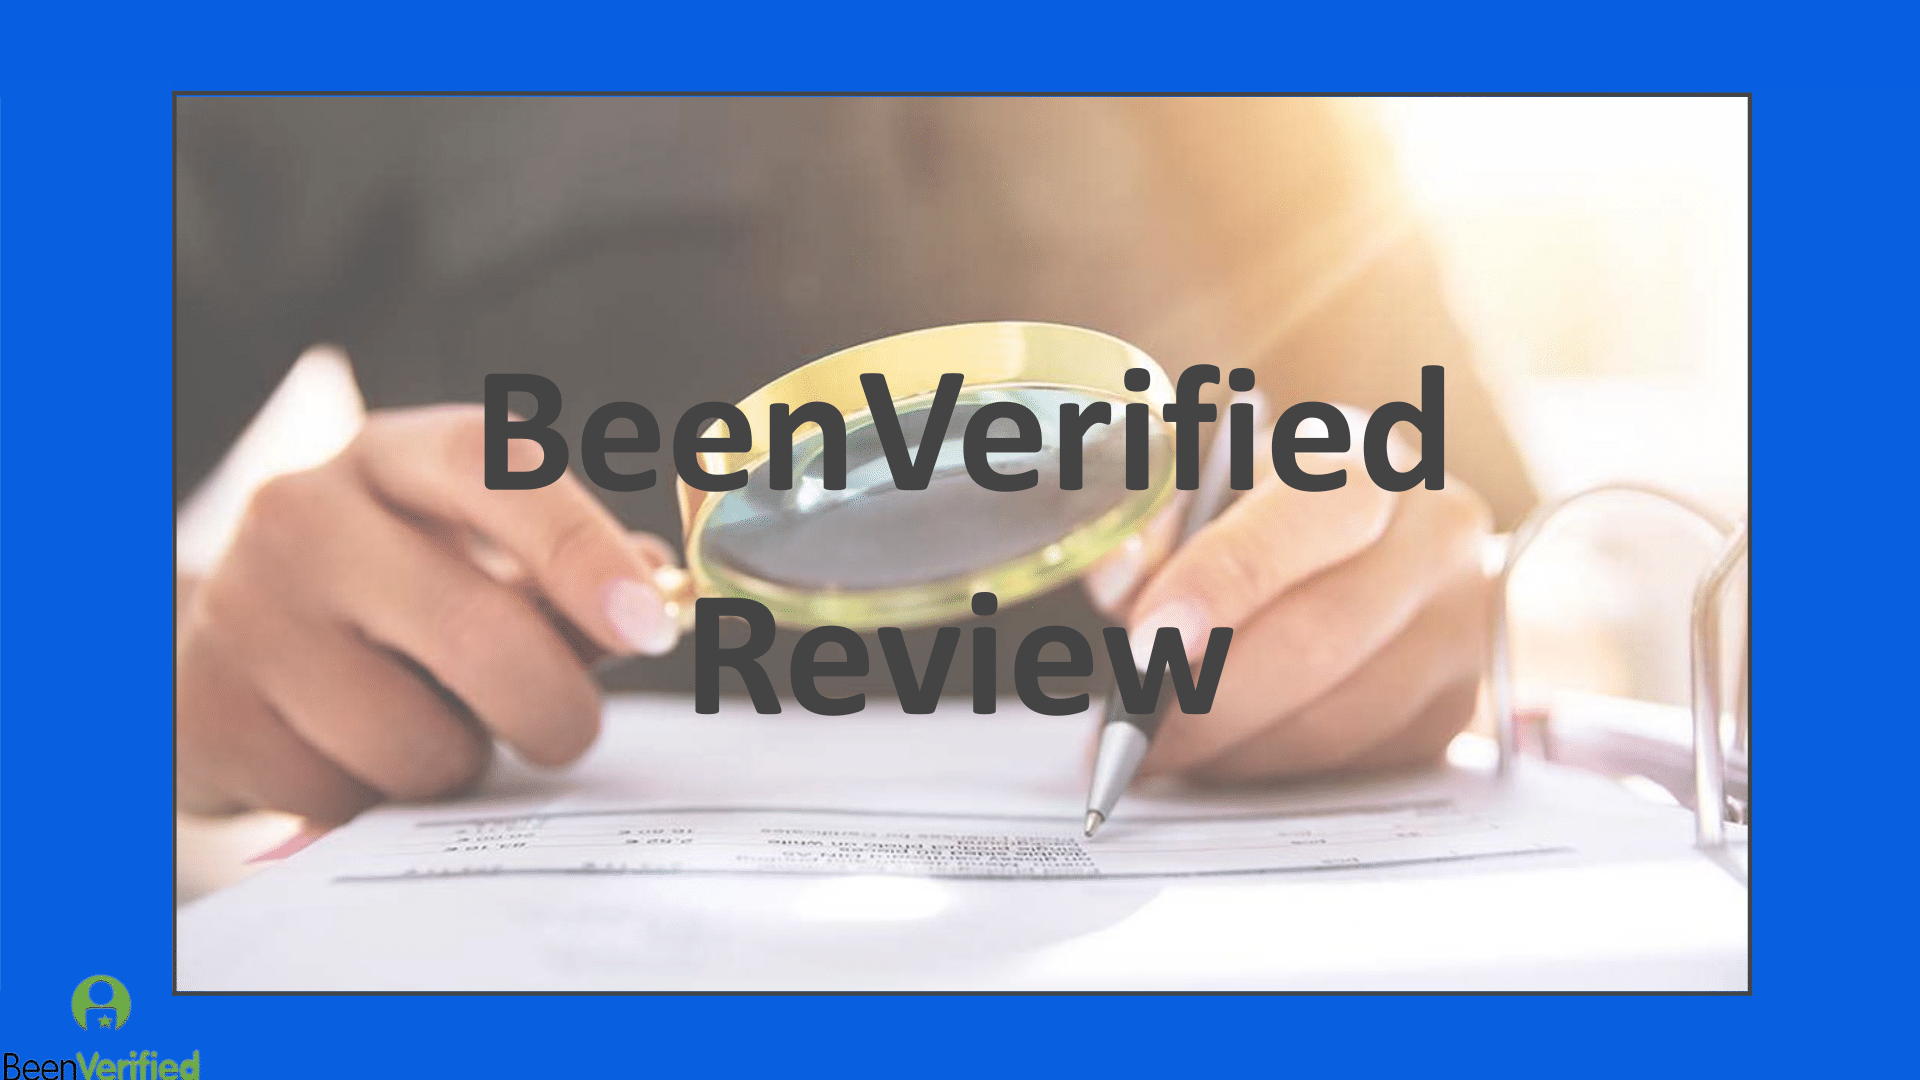 BeenVerified Review